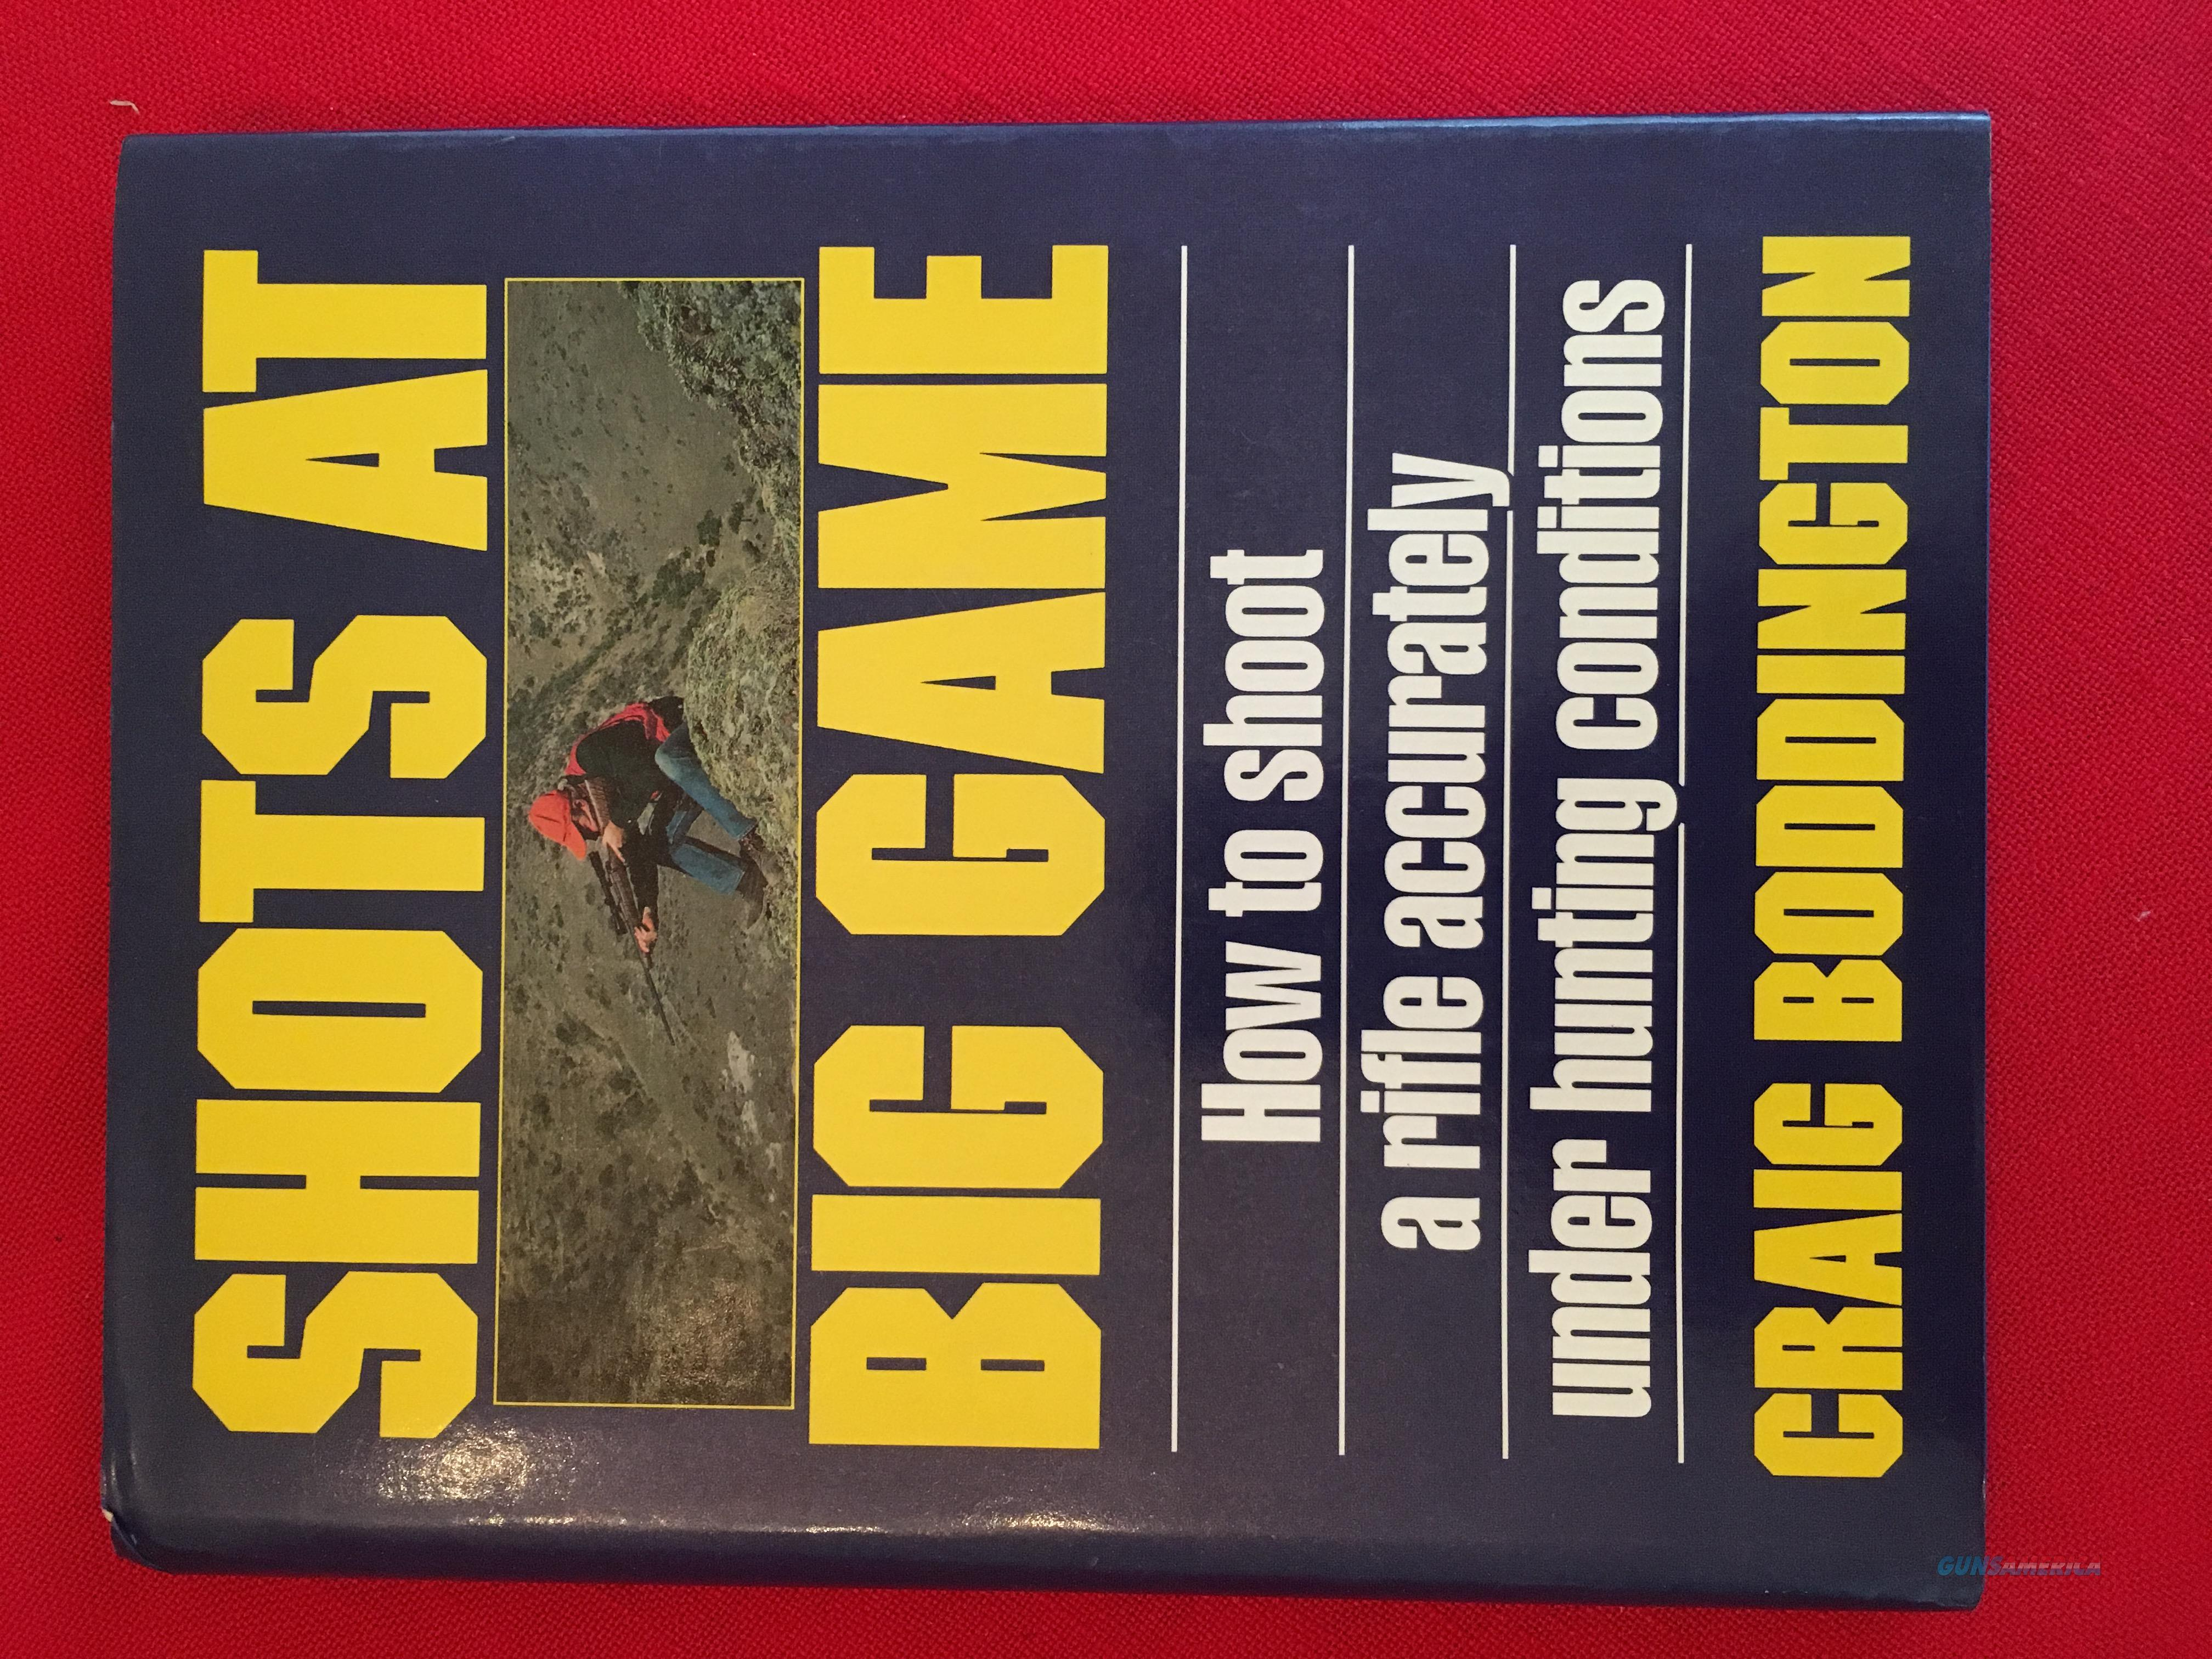 Shots At Big Game: How to shoot a rifle accurately under hunting conditions by Craig Boggington  Non-Guns > Books & Magazines